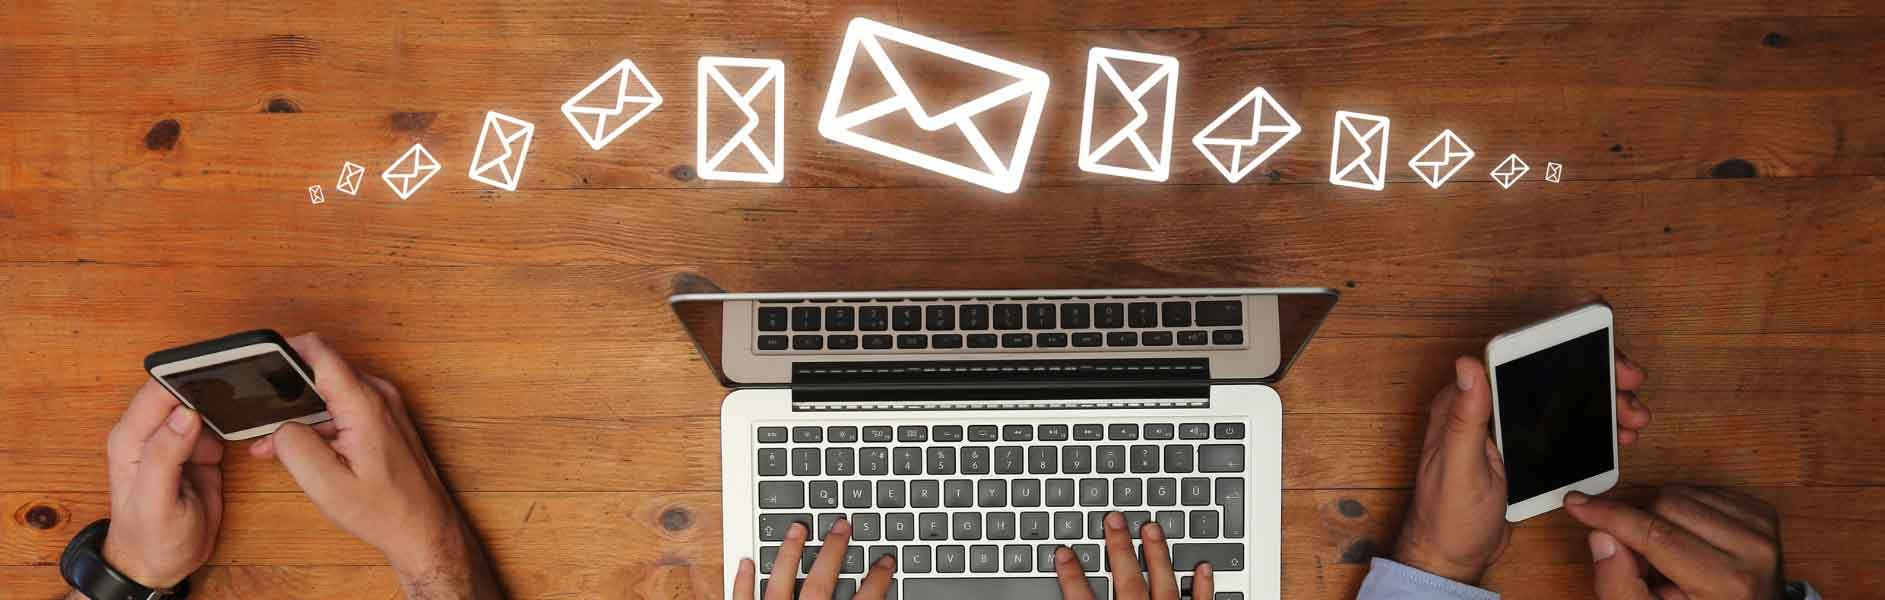 How to Avoid Unwanted Email Without Filtering Important Messages